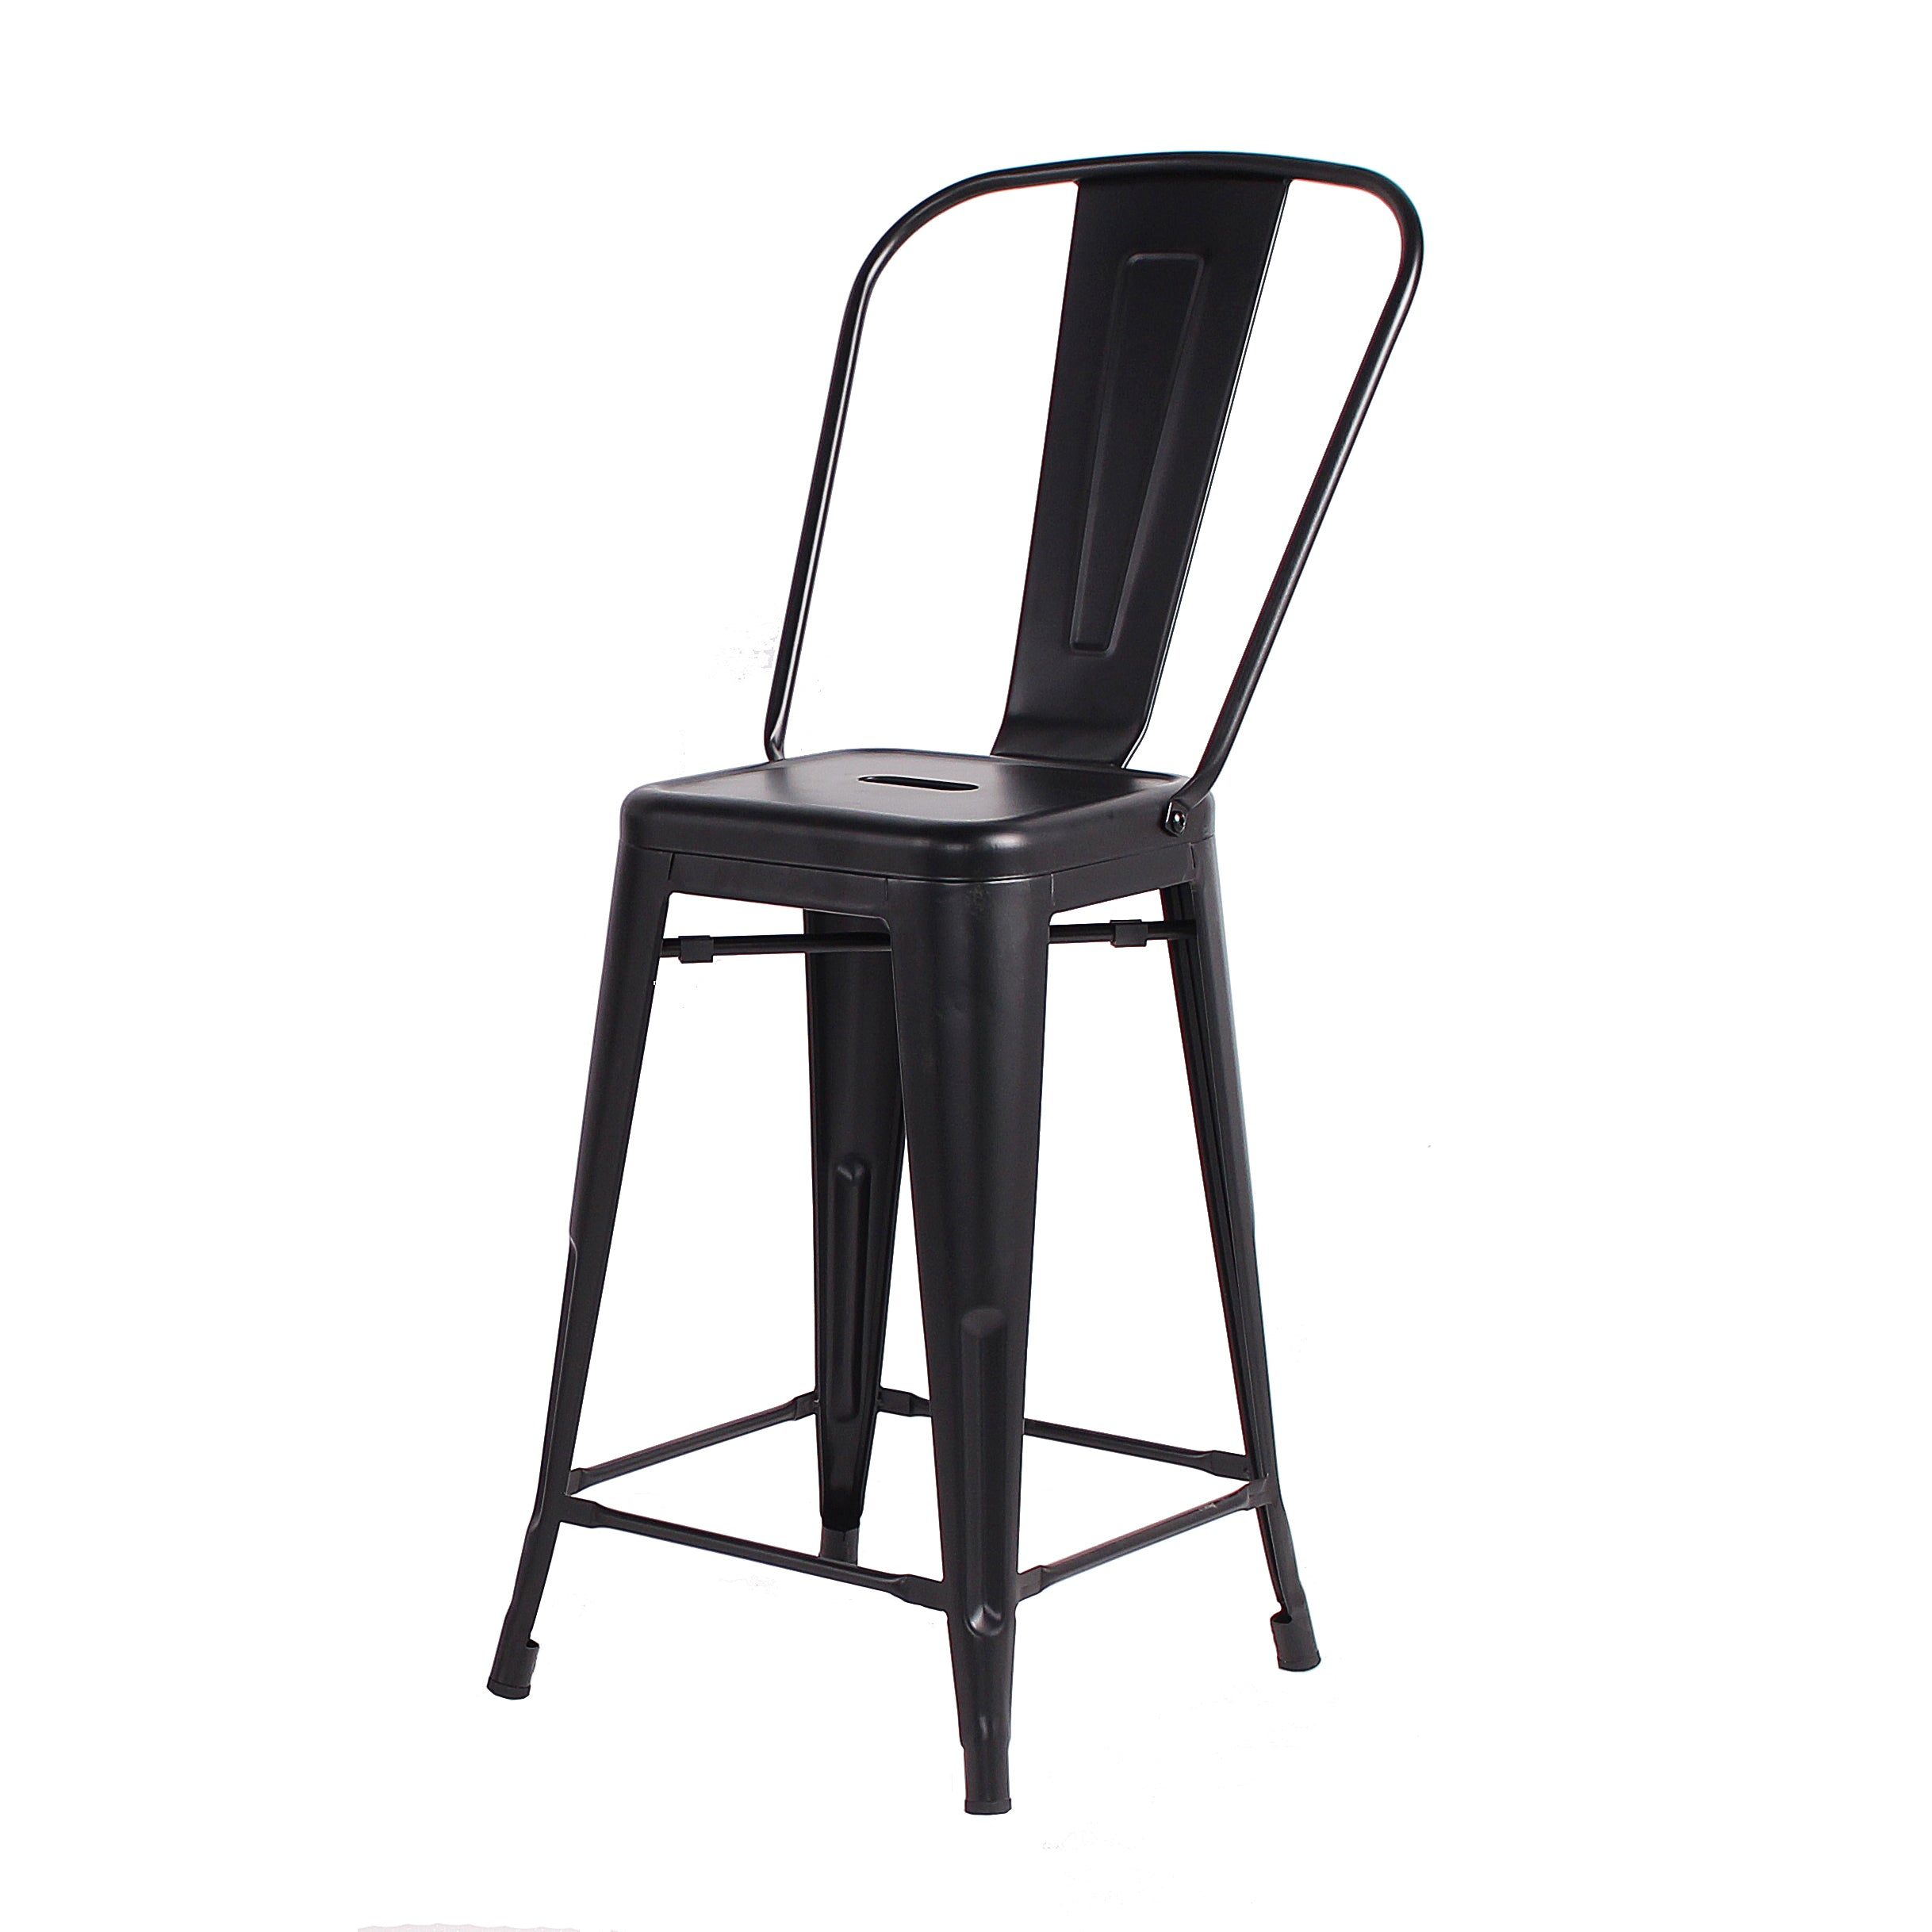 Buschman Set of 4 Matte Black 24 Inch Counter Height Metal Bar Stools with High Back, Indoor/Outdoor